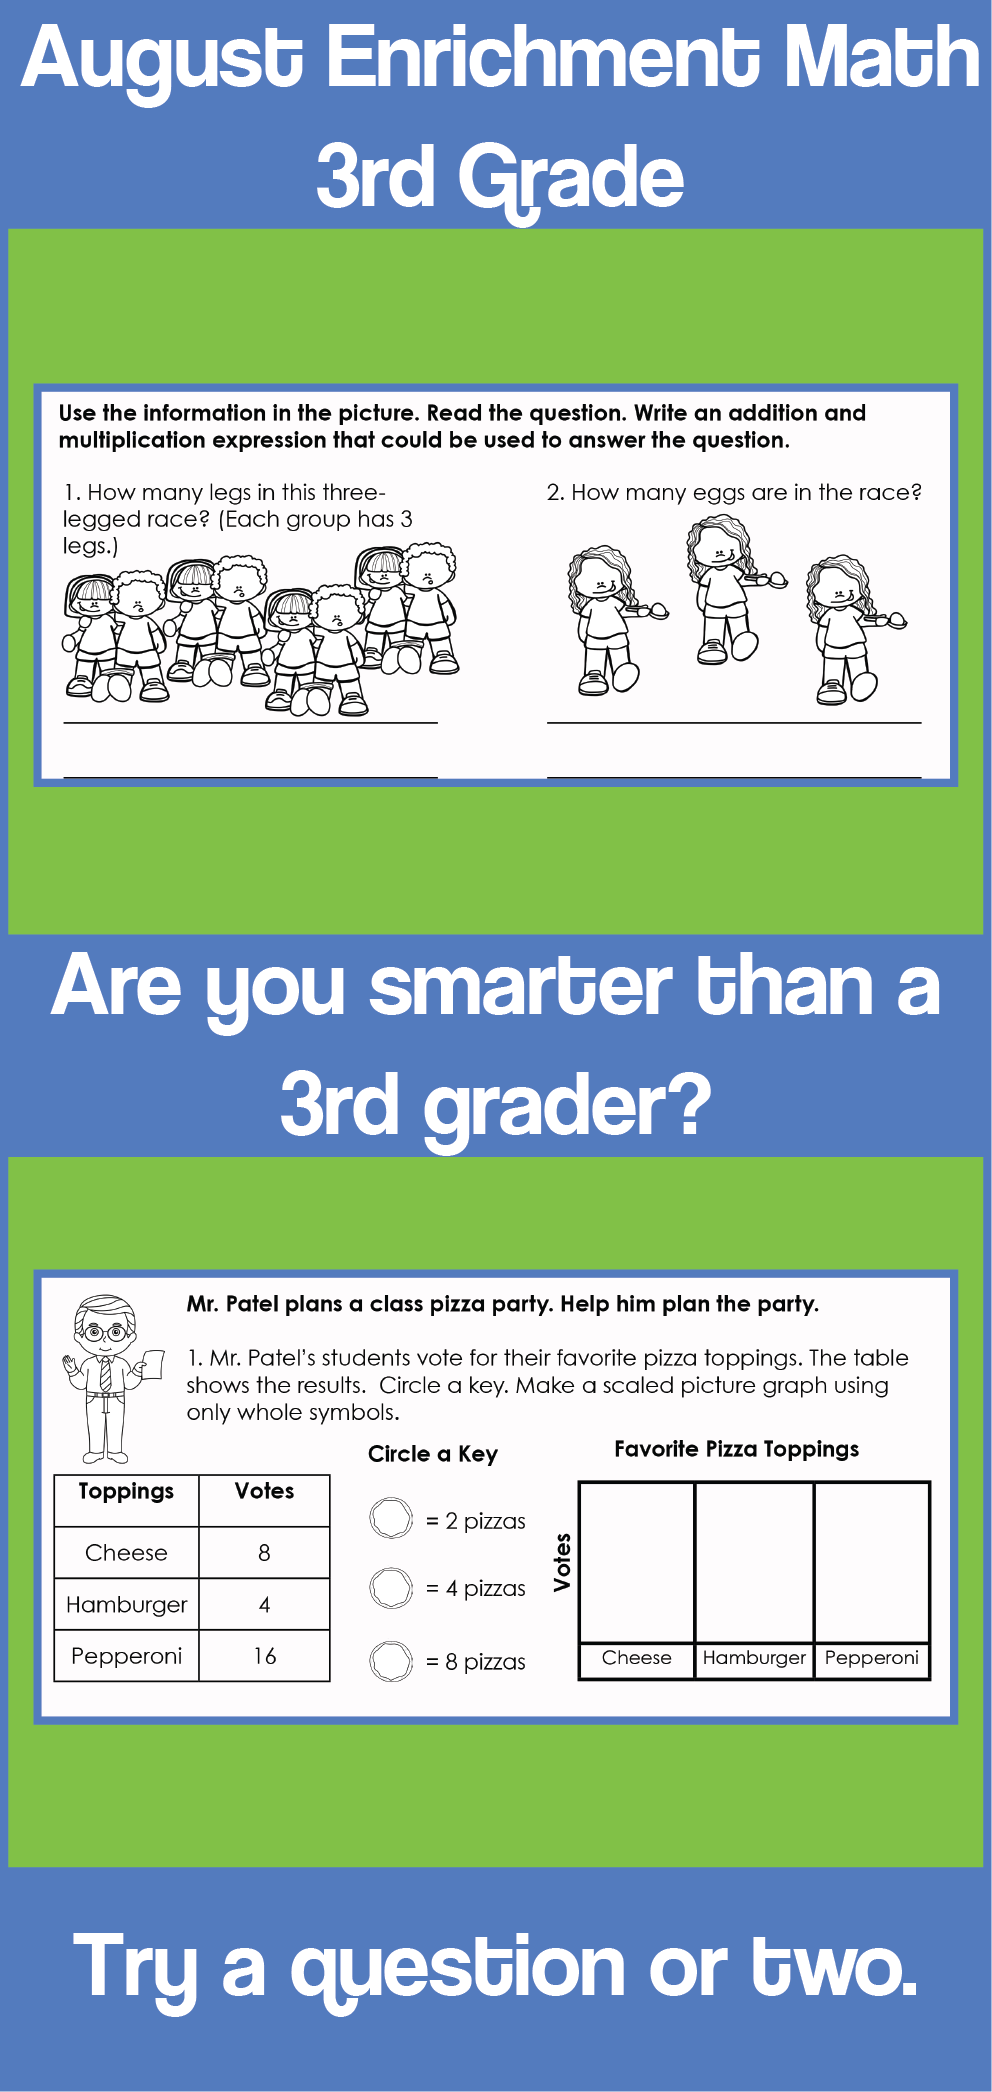 Love To Challenge Your Students Do You Want To Build On Skills For 2nd Grade The 15 Worksheets And 2 Performance Tasks Math Enrichment Math 3rd Grade Math [ 2092 x 992 Pixel ]